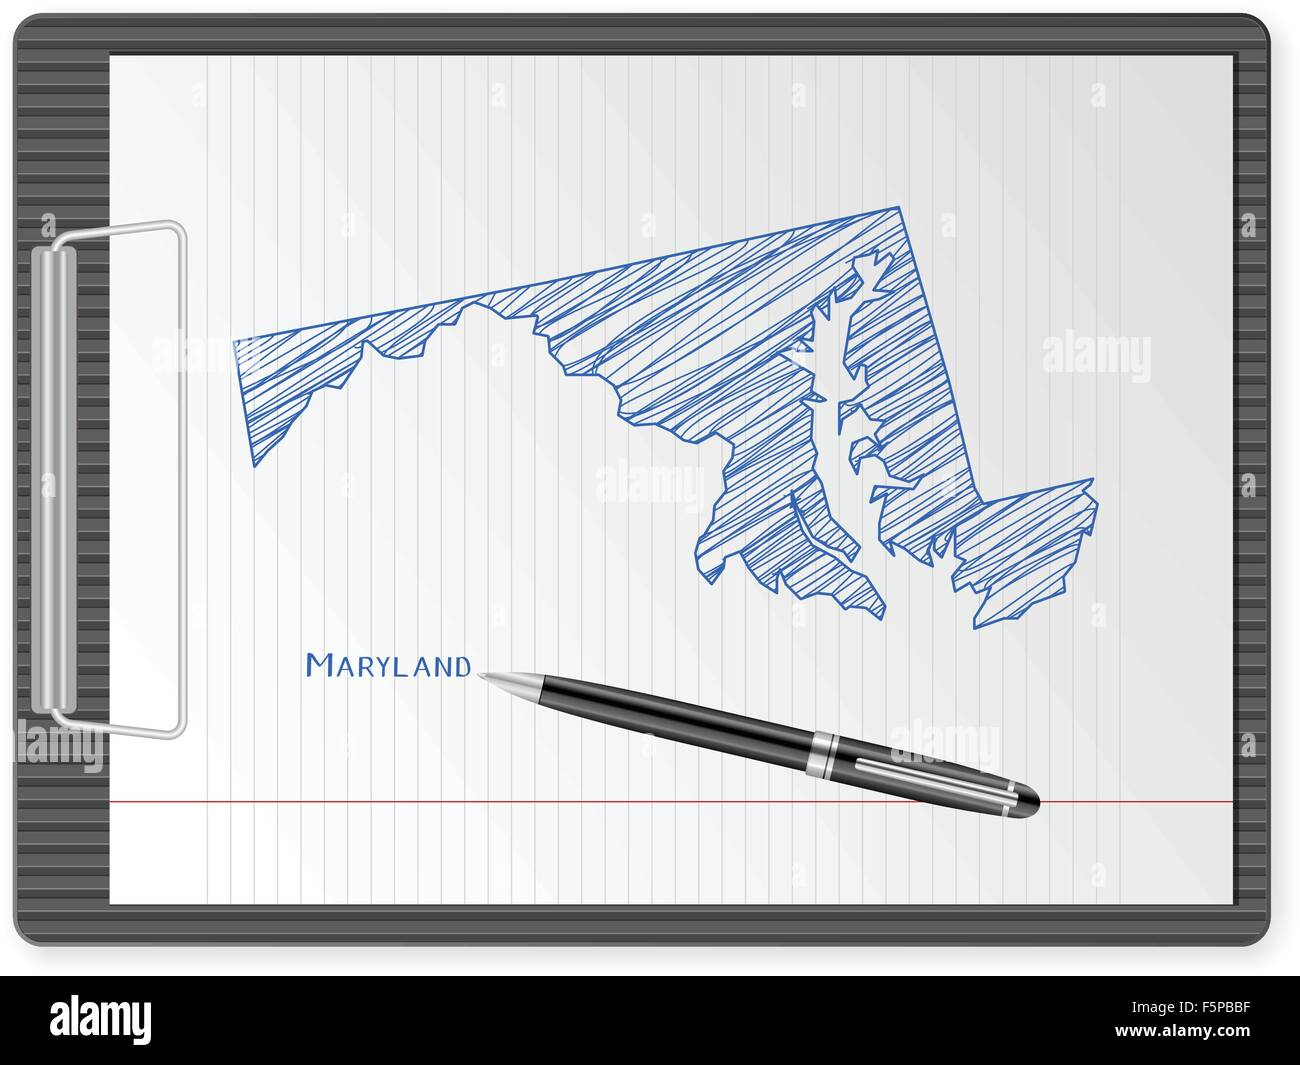 Clipboard with drawing Maryland map Vector illustration Stock